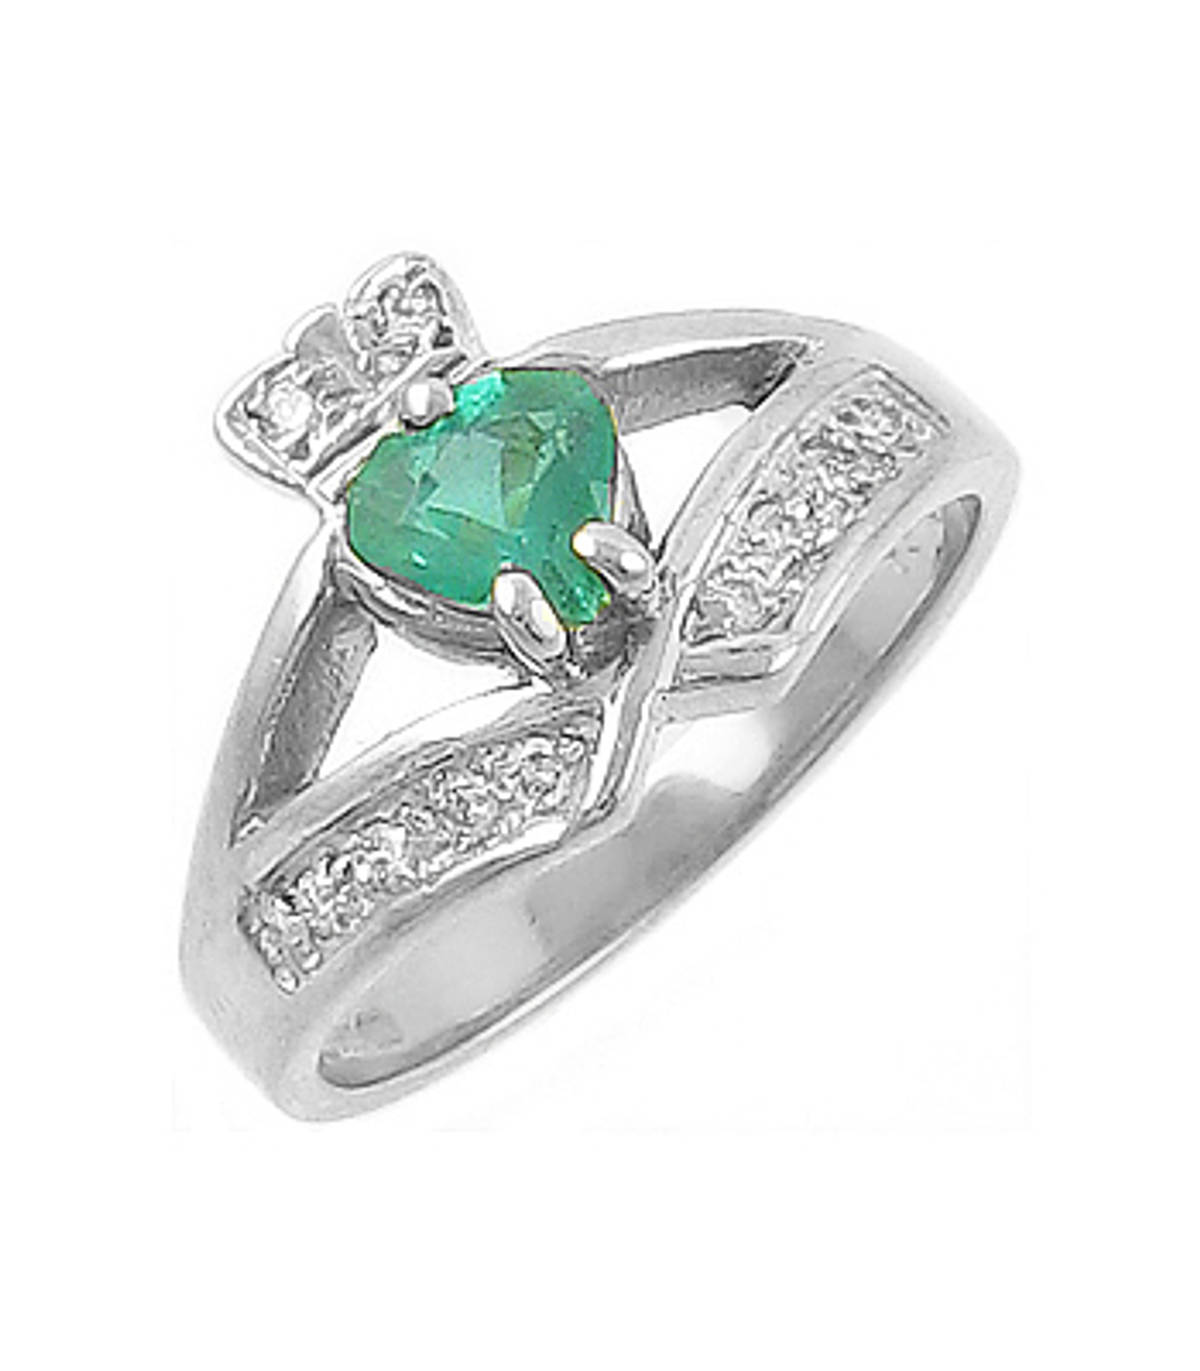 14 carat white gold 0.55cts emerald/0.12cts diamonds claddagh engagement ring